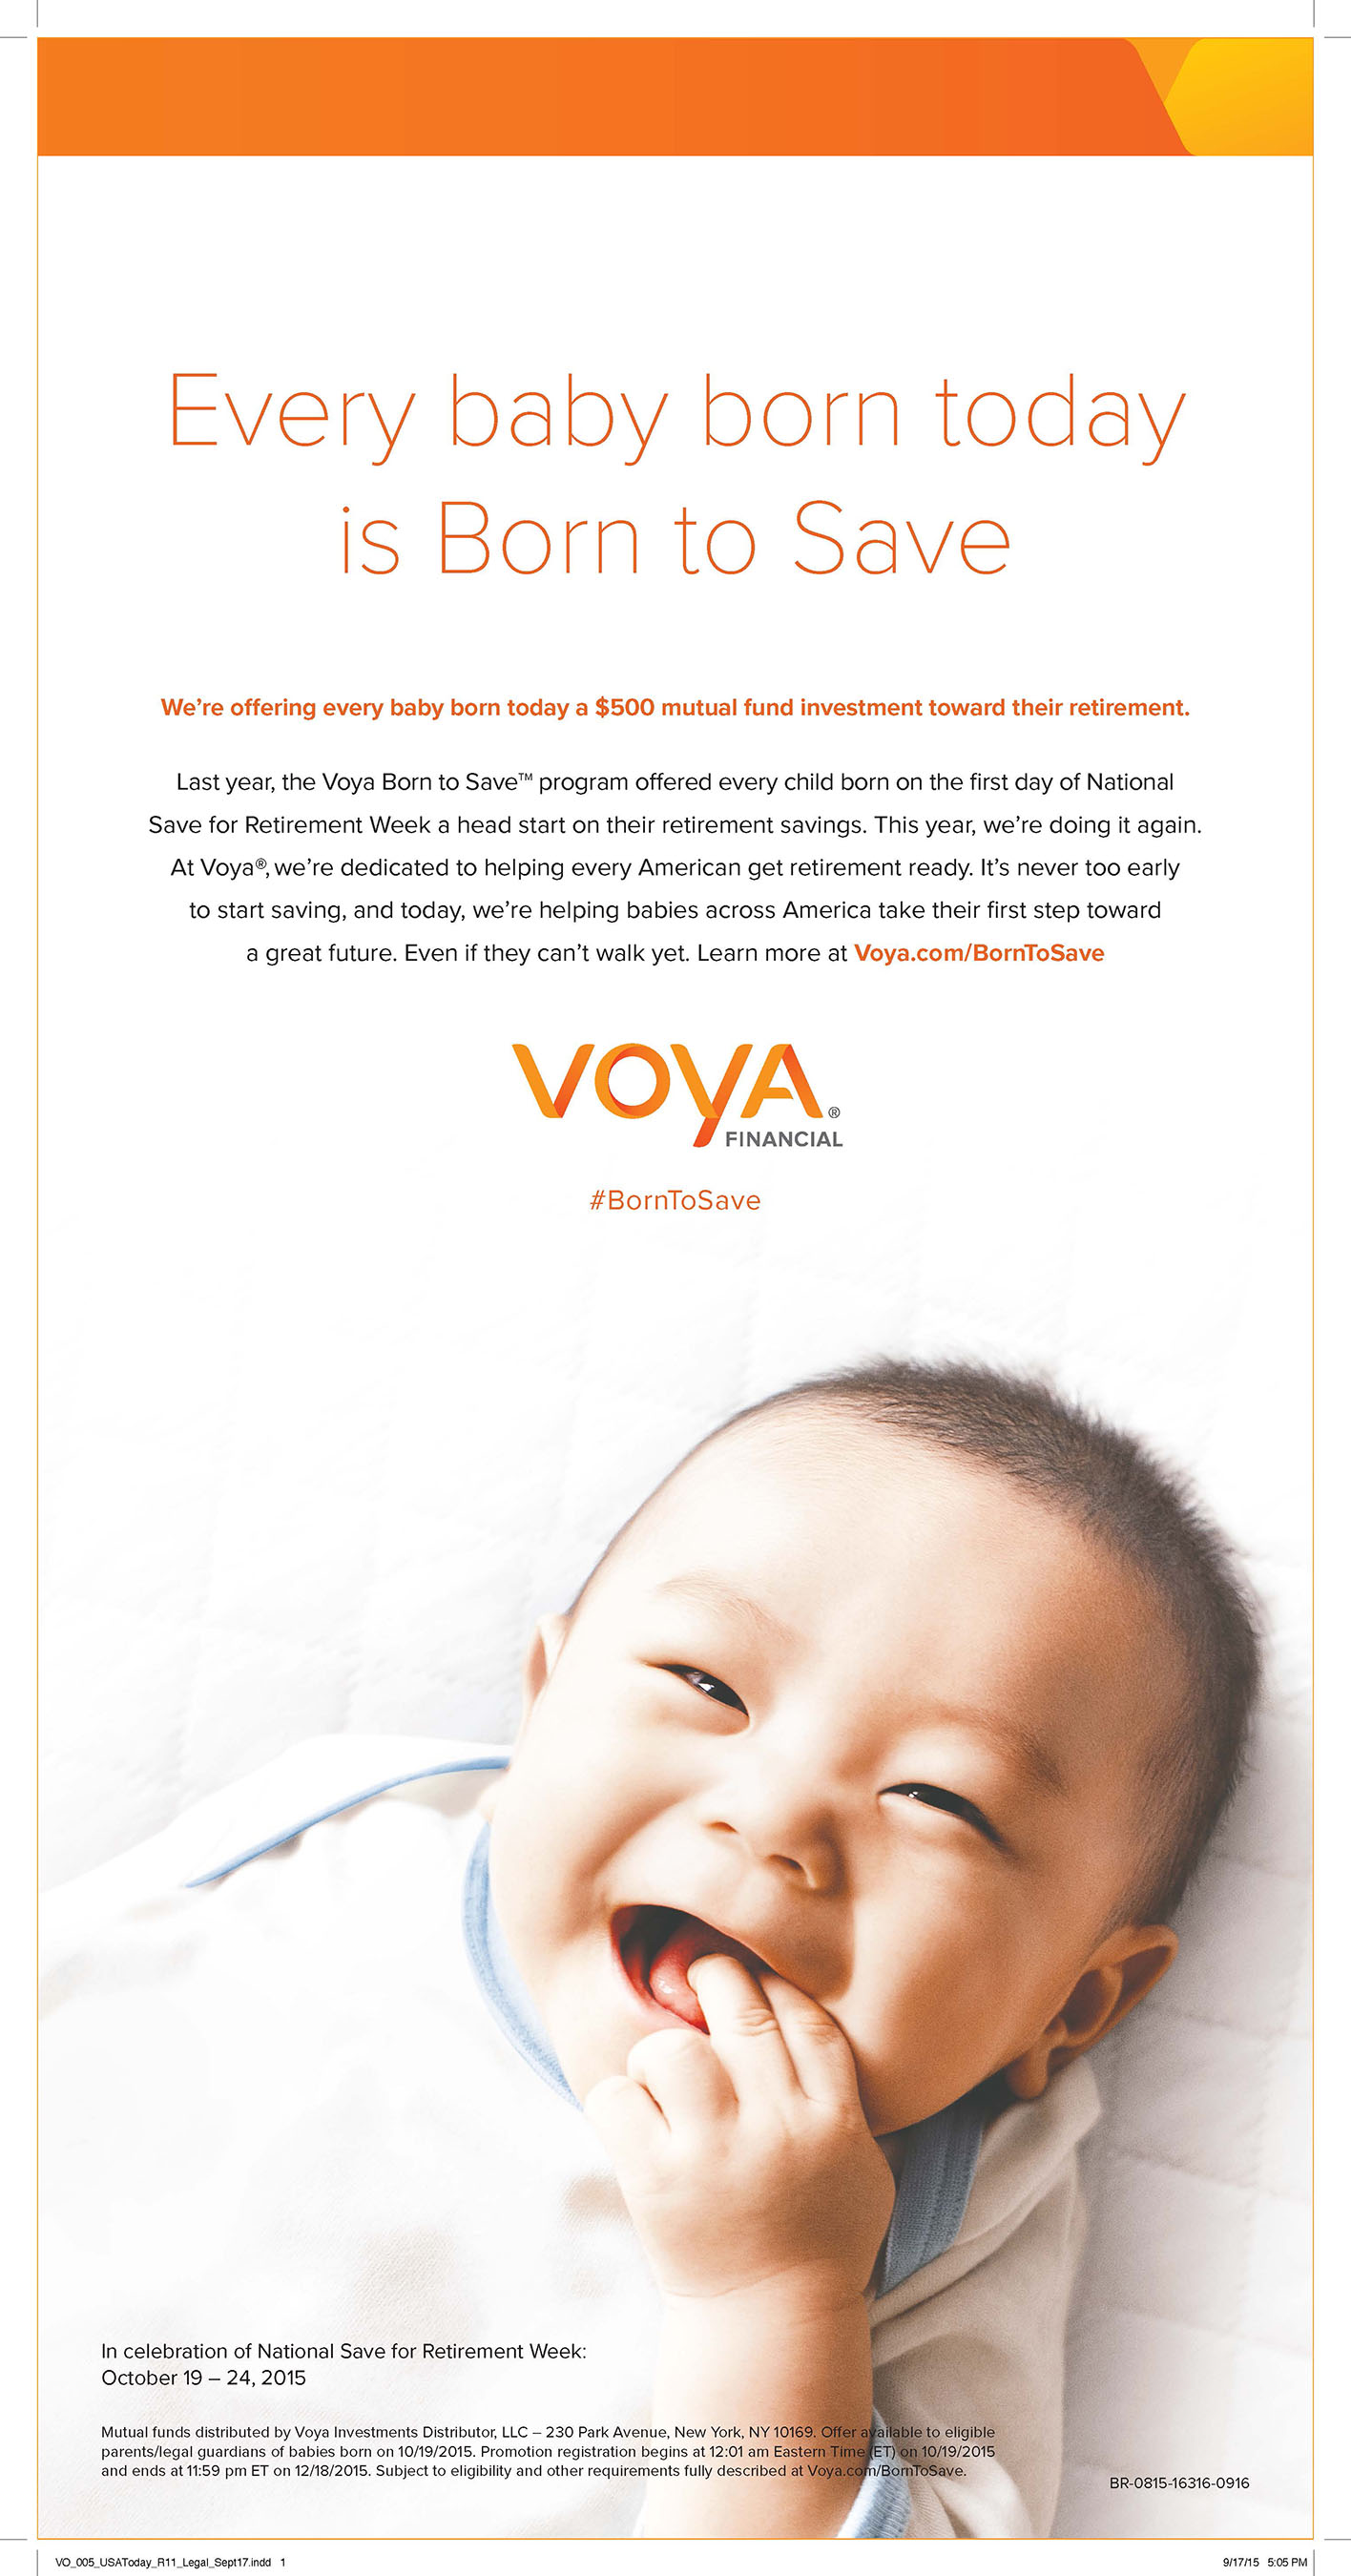 Voya Financial is offering every baby born in the U.S. on October 19, 2015 a $500 mutual fund investment as a head start on their retirement savings through the Voya Born to Save™ program.